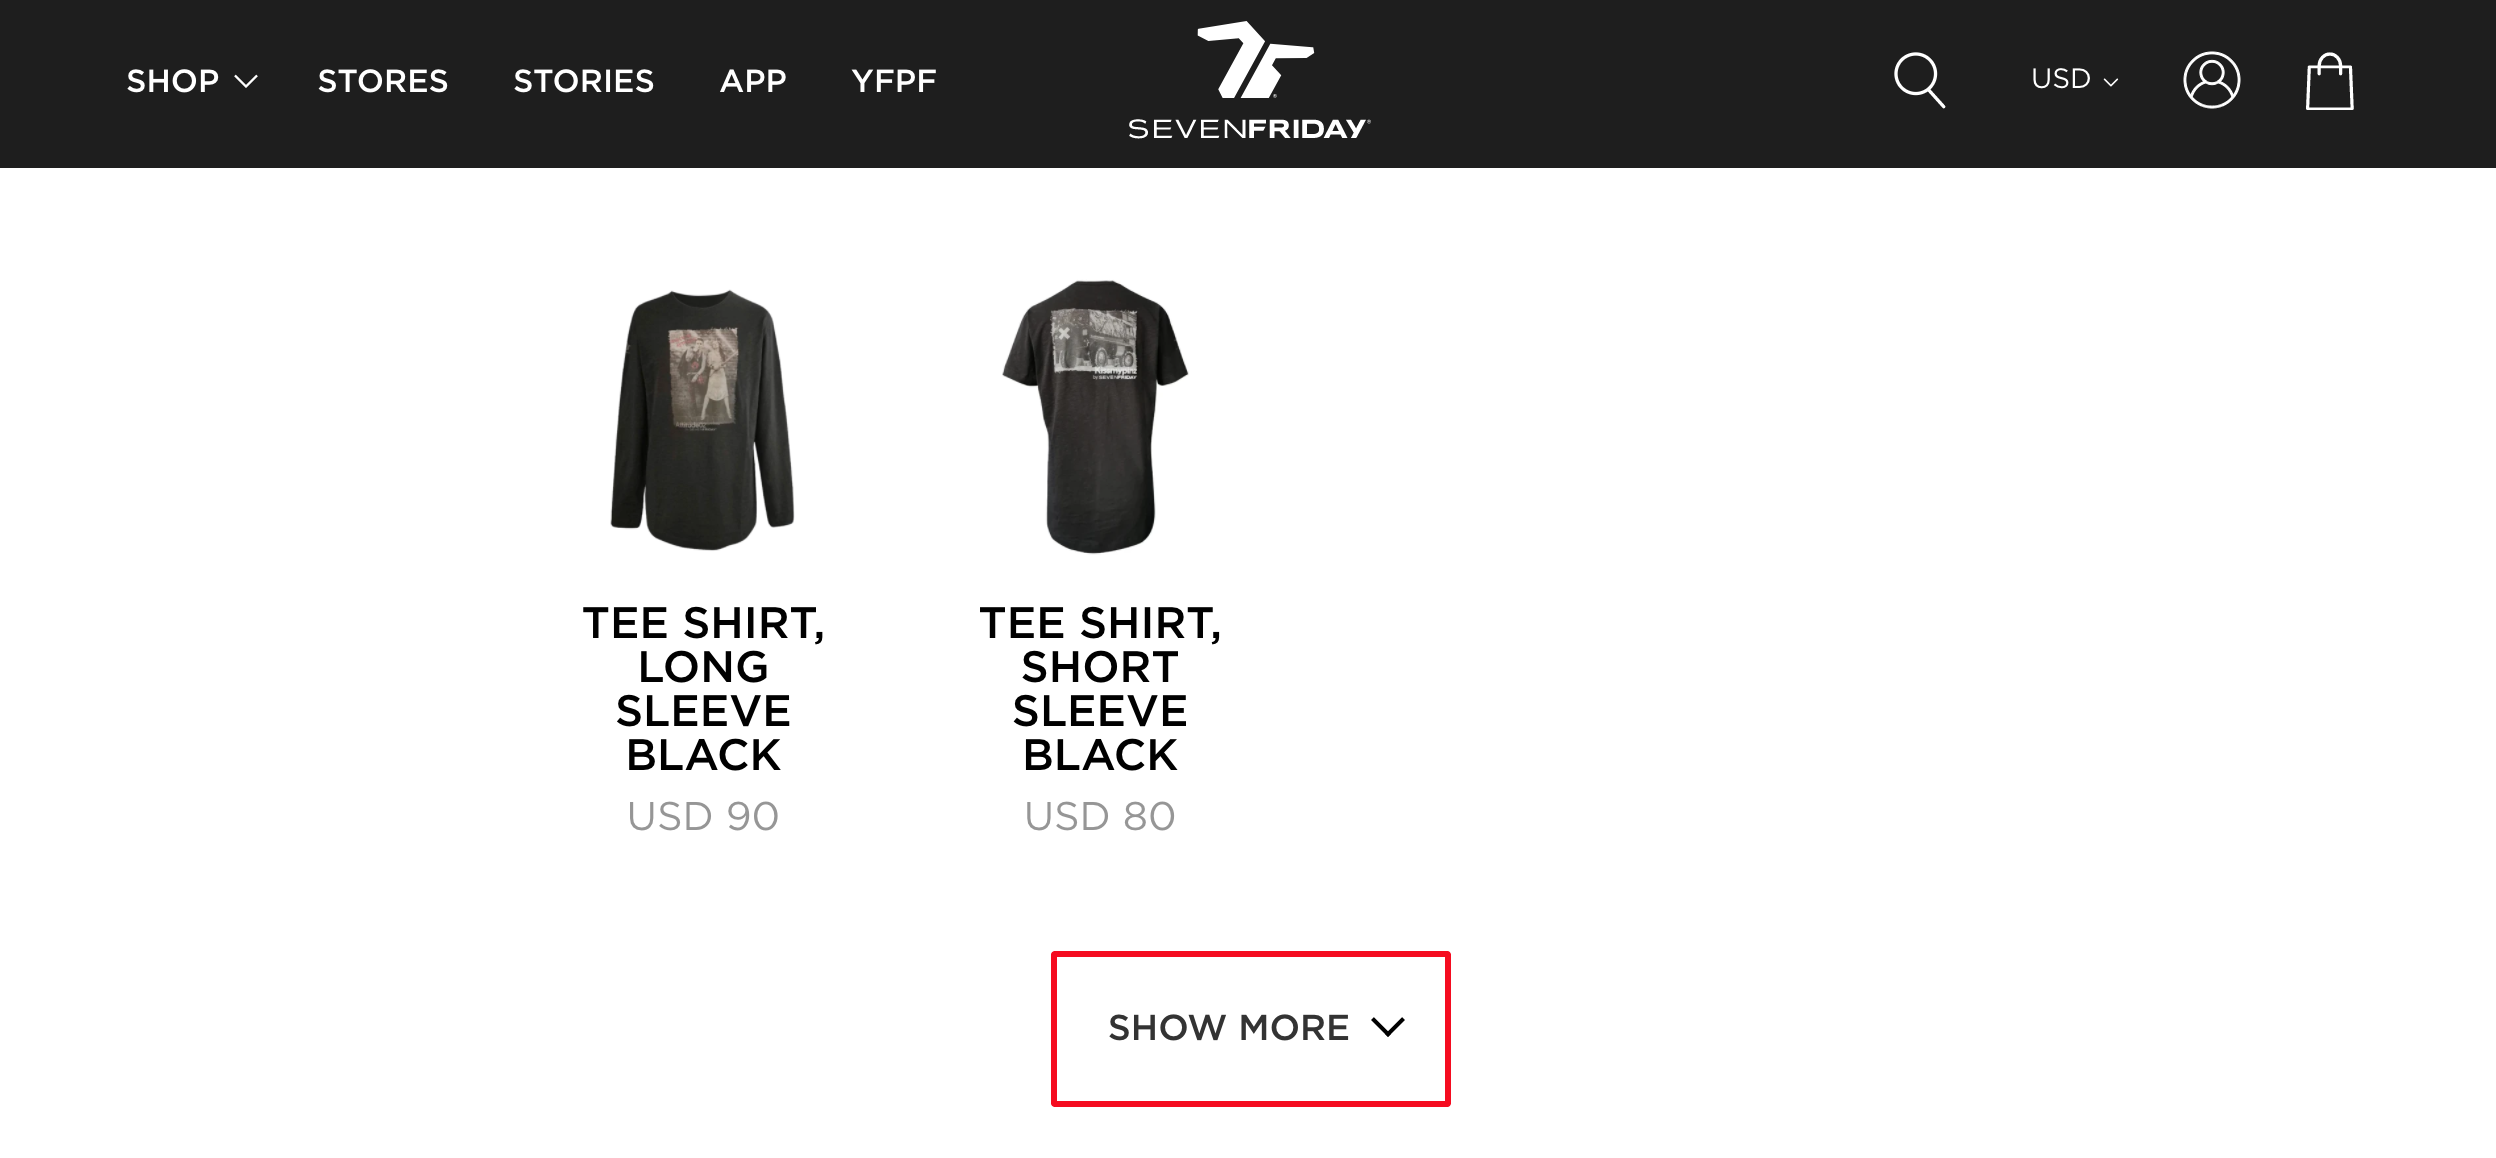 load more button on seven friday Shopify search results